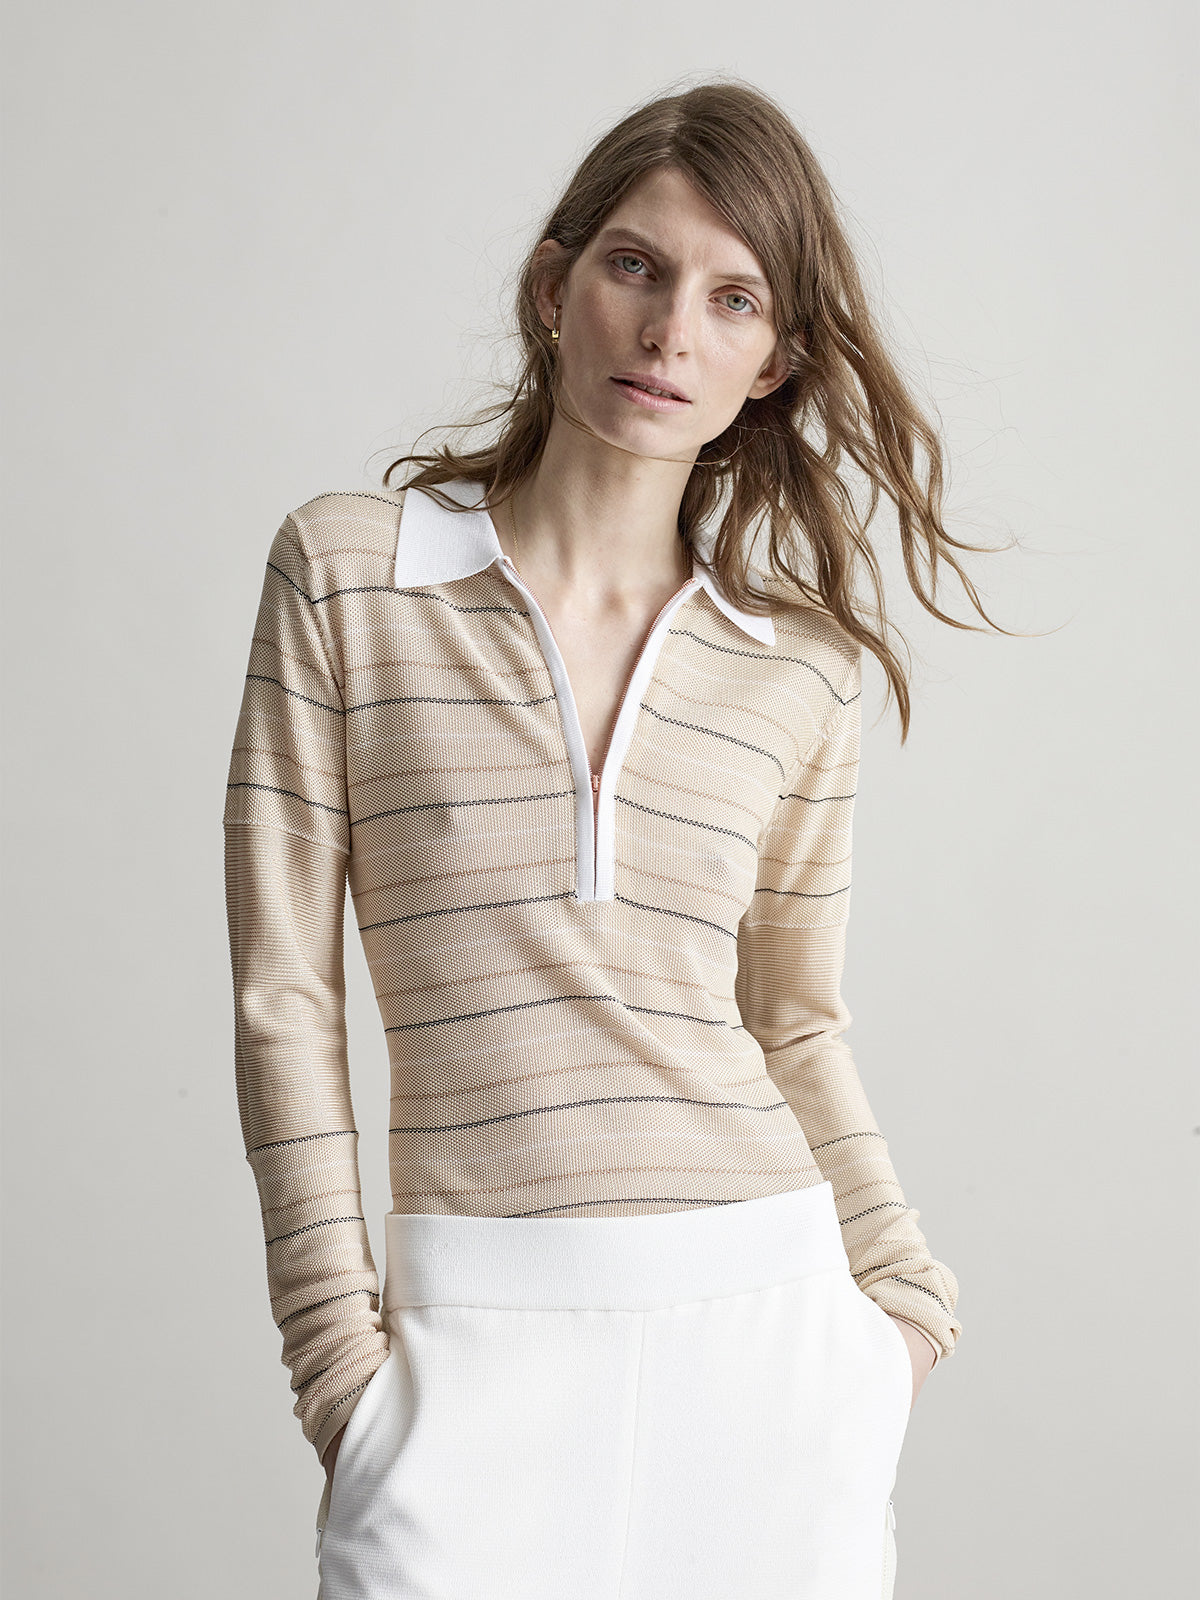 Emerson Cream Polo Top - Sykes London